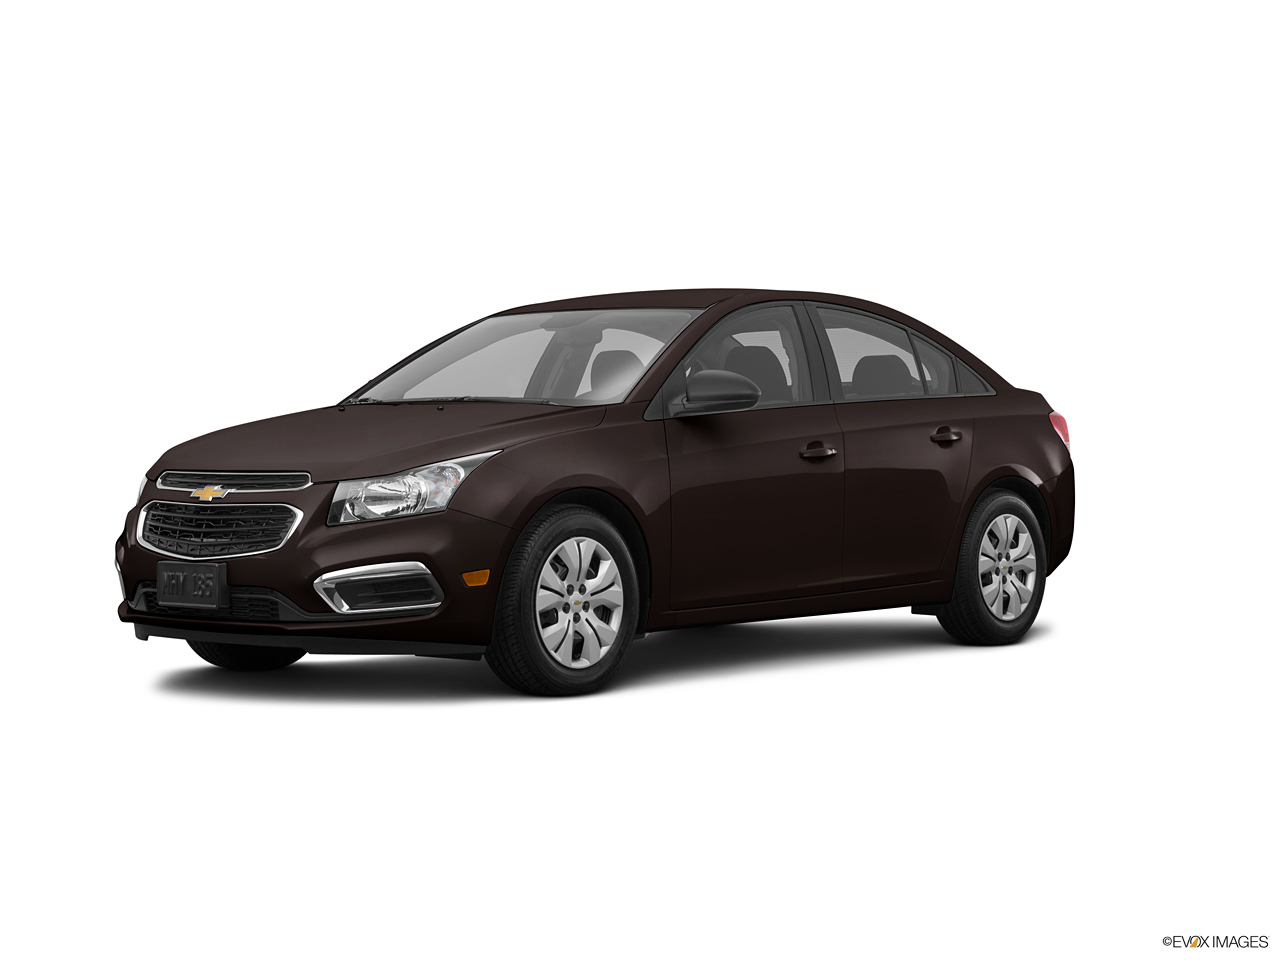 chevrolet cruze 2016 prices in uae specs reviews for. Black Bedroom Furniture Sets. Home Design Ideas